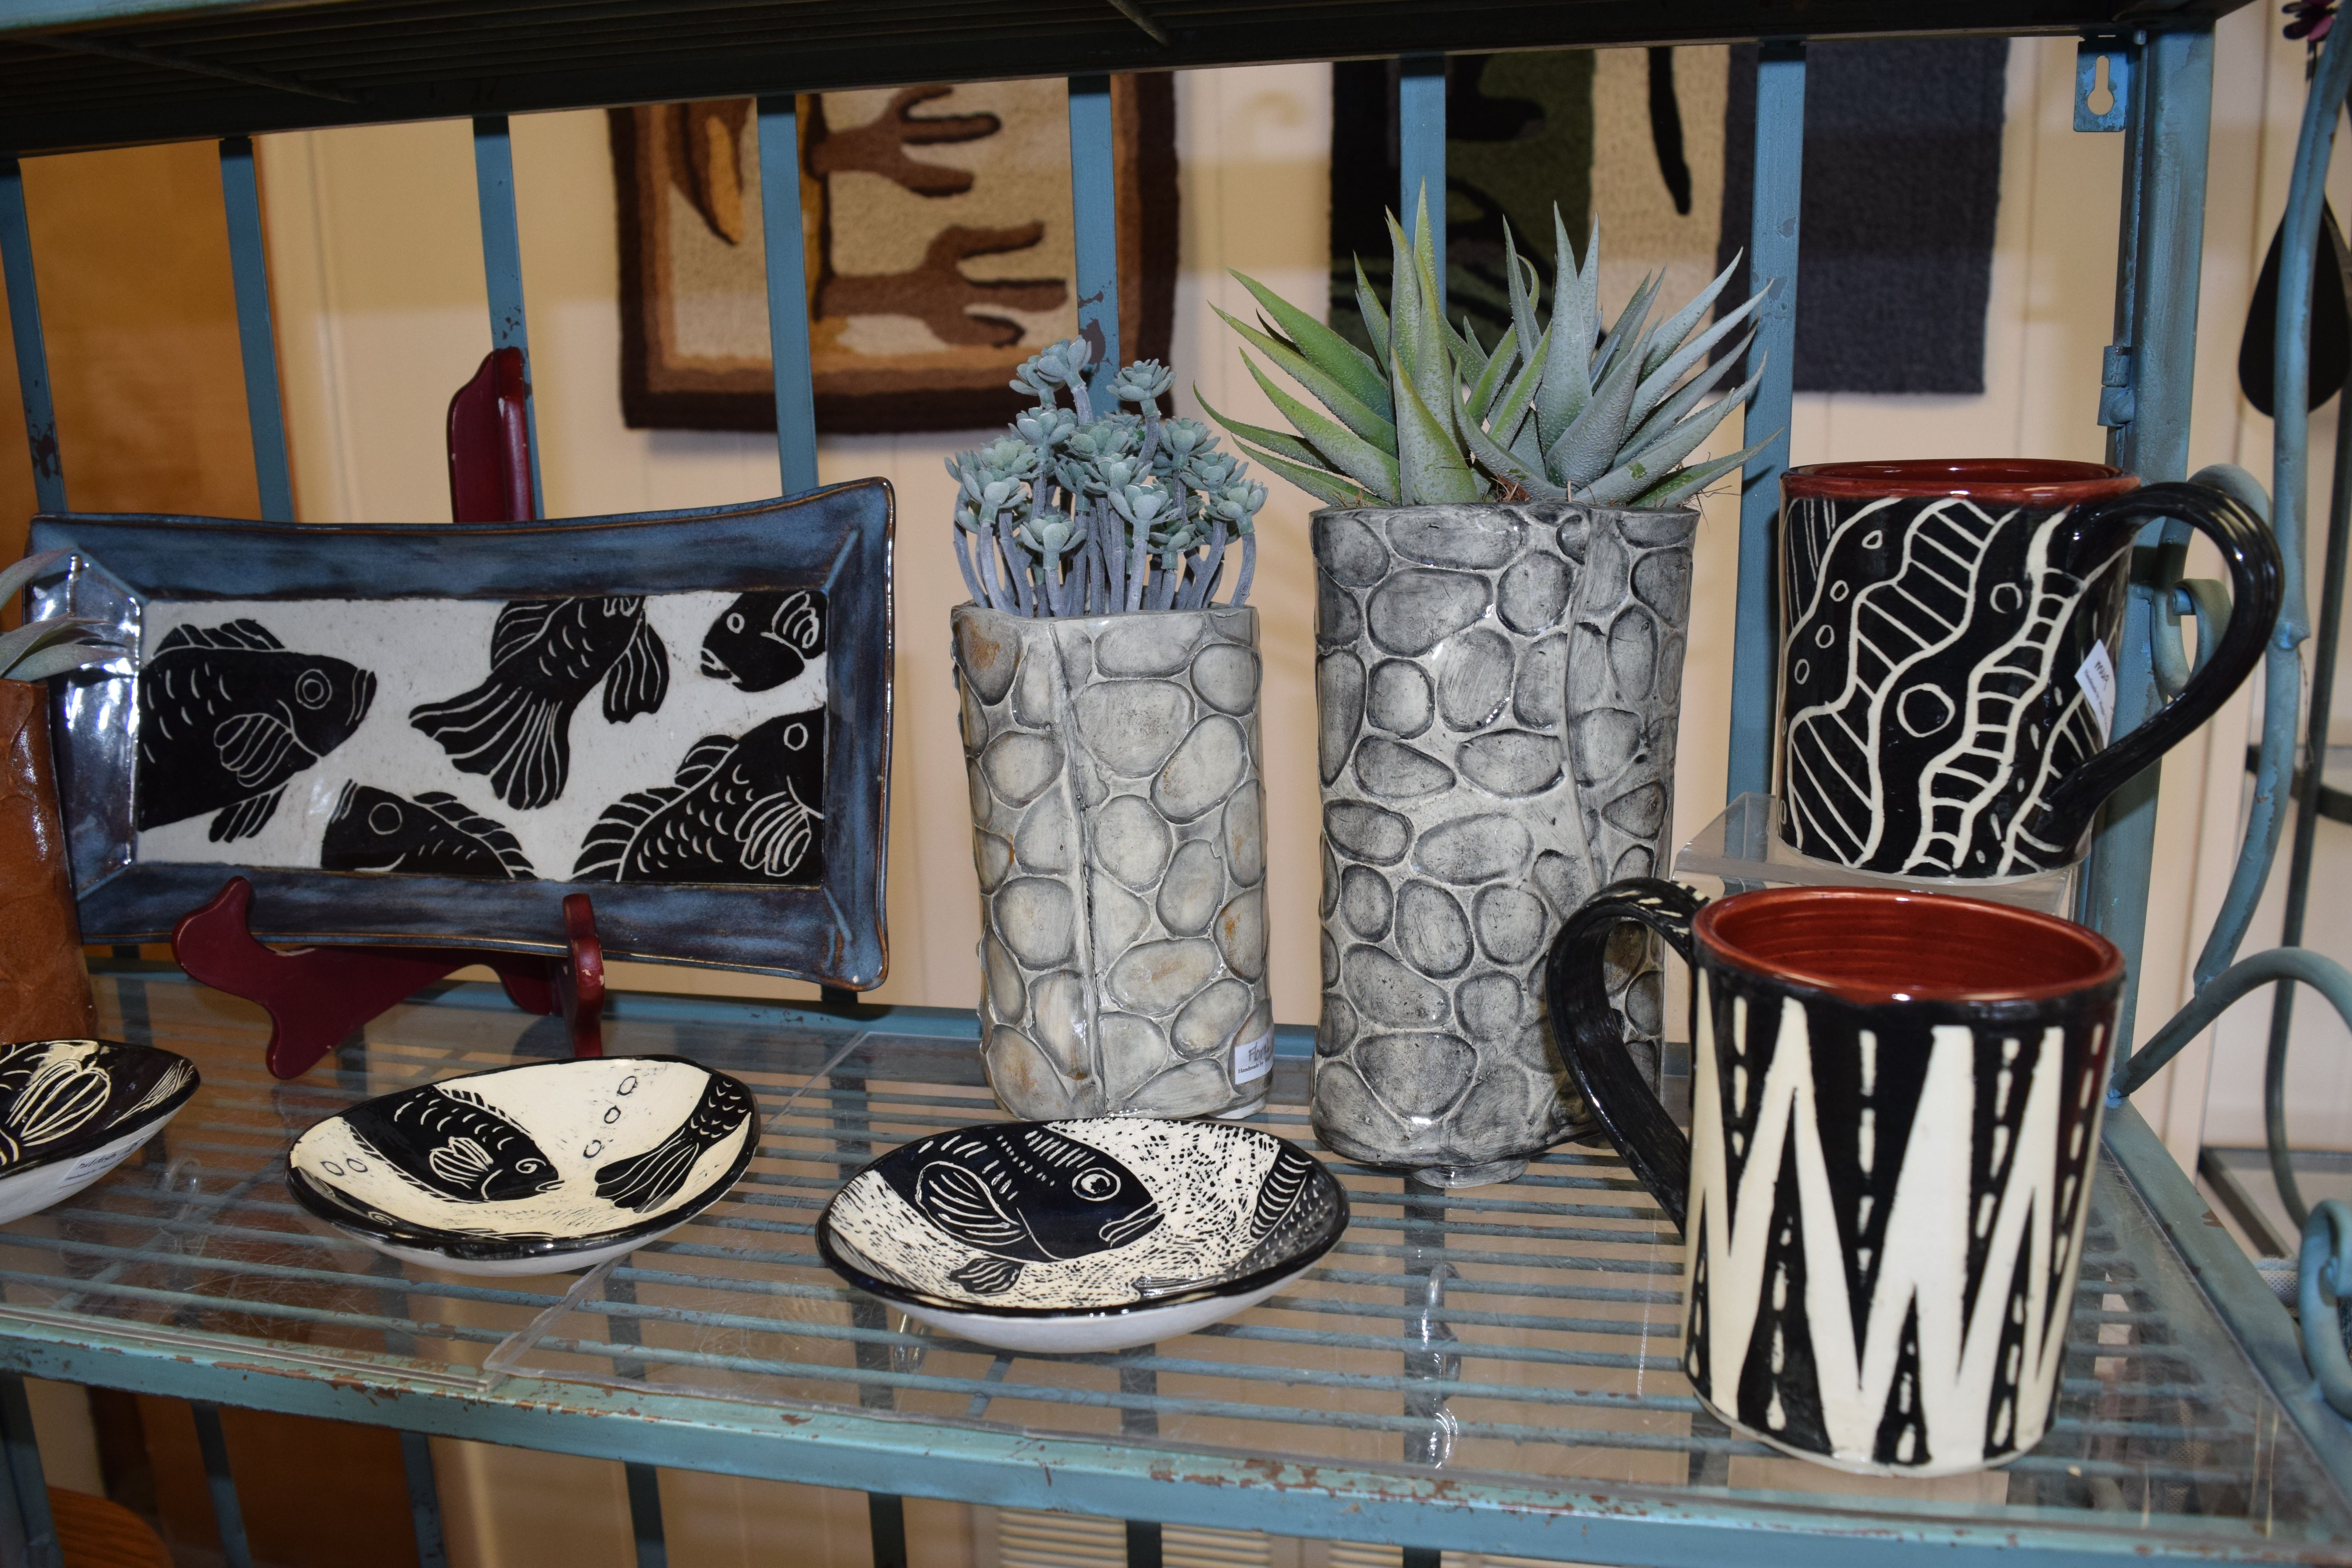 Local Artist Maggie Trzcinski Showcases A Variety Of Pottery And Clay Pieces Including Cups Bowls And Spoon Plates Pottery Bowling Green Ohio Local Artists